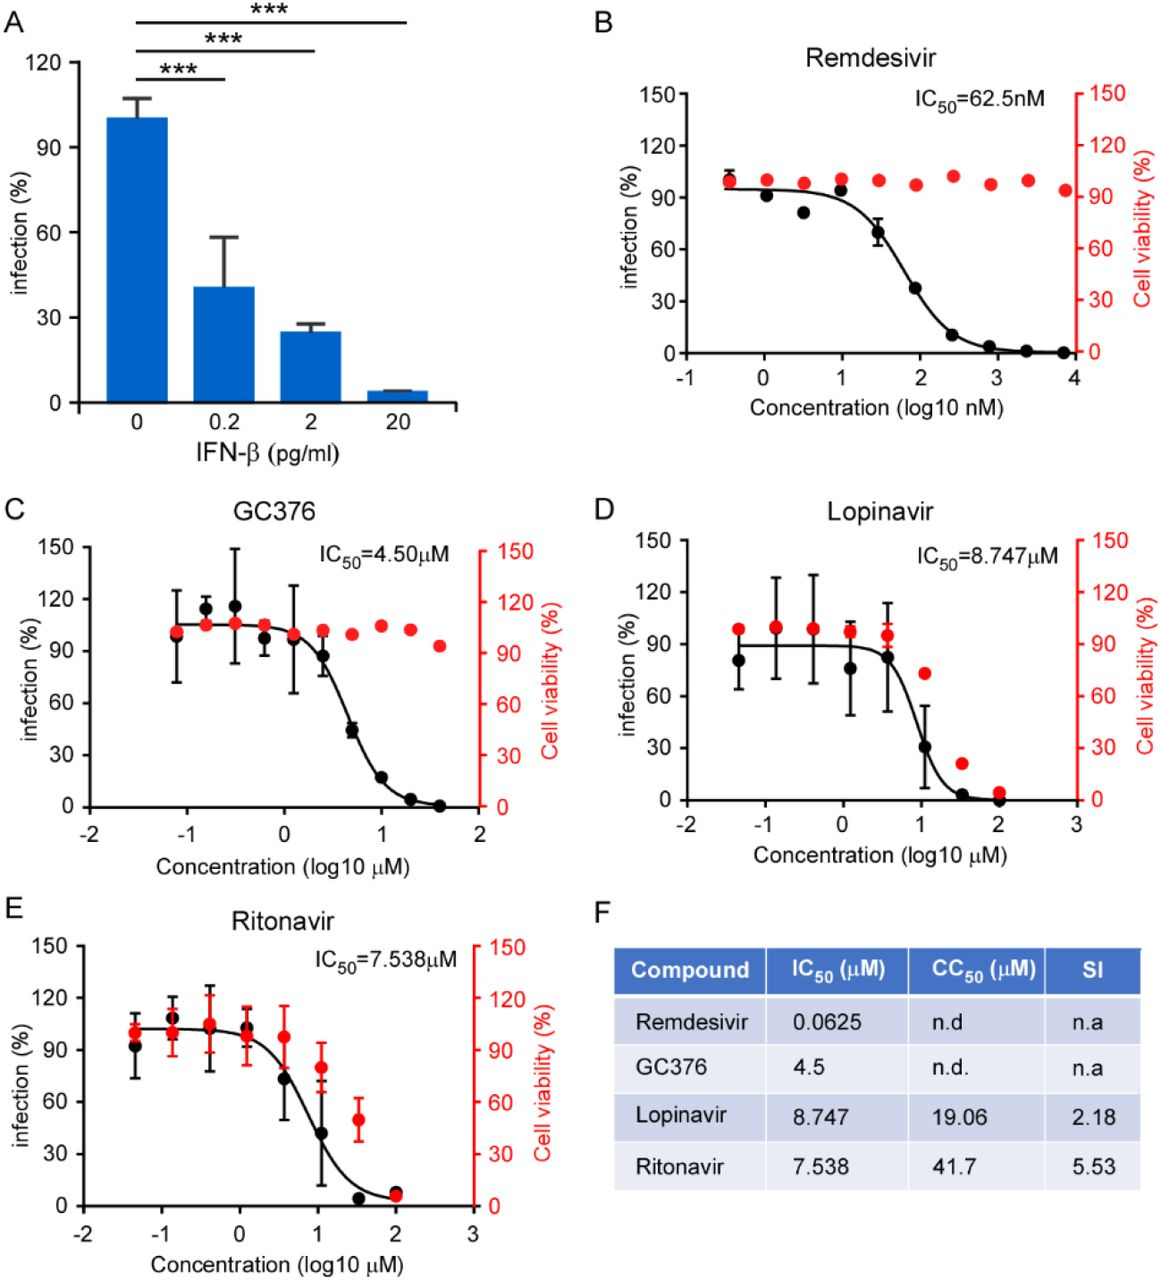 Inhibition of recombinant SARS-CoV-2 GFP/ΔN trVLP infection by IFN and antivirals. (A) IFN-β pretreated Caco-2-N int cells were subsequently infected with trVLP and cells were subjected to flow cytometry analysis for quantify the GFP fluorescence at 2 days post-infection. Error bars represent the standard deviations from three independent experiments (n=6). (B-E) Antiviral effect of remdesivir, GC376, lopinavir and ritonavir. The drug treated cells were infected with trVLP and GFP fluorescence was quantified at 48h after infection. The cytotoxic effect of each drug at indicated concentrations were determined by CellTiter-Glo cell viability assay. The virus infection or cytotoxicity is plotted versus compound concentration (n=3 biological replicates for all compounds). The black dots indicate replicate measurements, and the black lines indicate dose-response curve fits. The red dots indicate cytotoxicity. IC 50 values were calculated using Prism software and is representative of one of three independent experiments performed in triplicate. Three independent experiments had similar results. (F) Comparison of antiviral activity and cytotoxicity of each compound. Selectivity Index (SI), a ratio that compares a drug's cytotoxicity and antiviral activity was also calculated. n.d.=not detected; n.a.=not applicable.